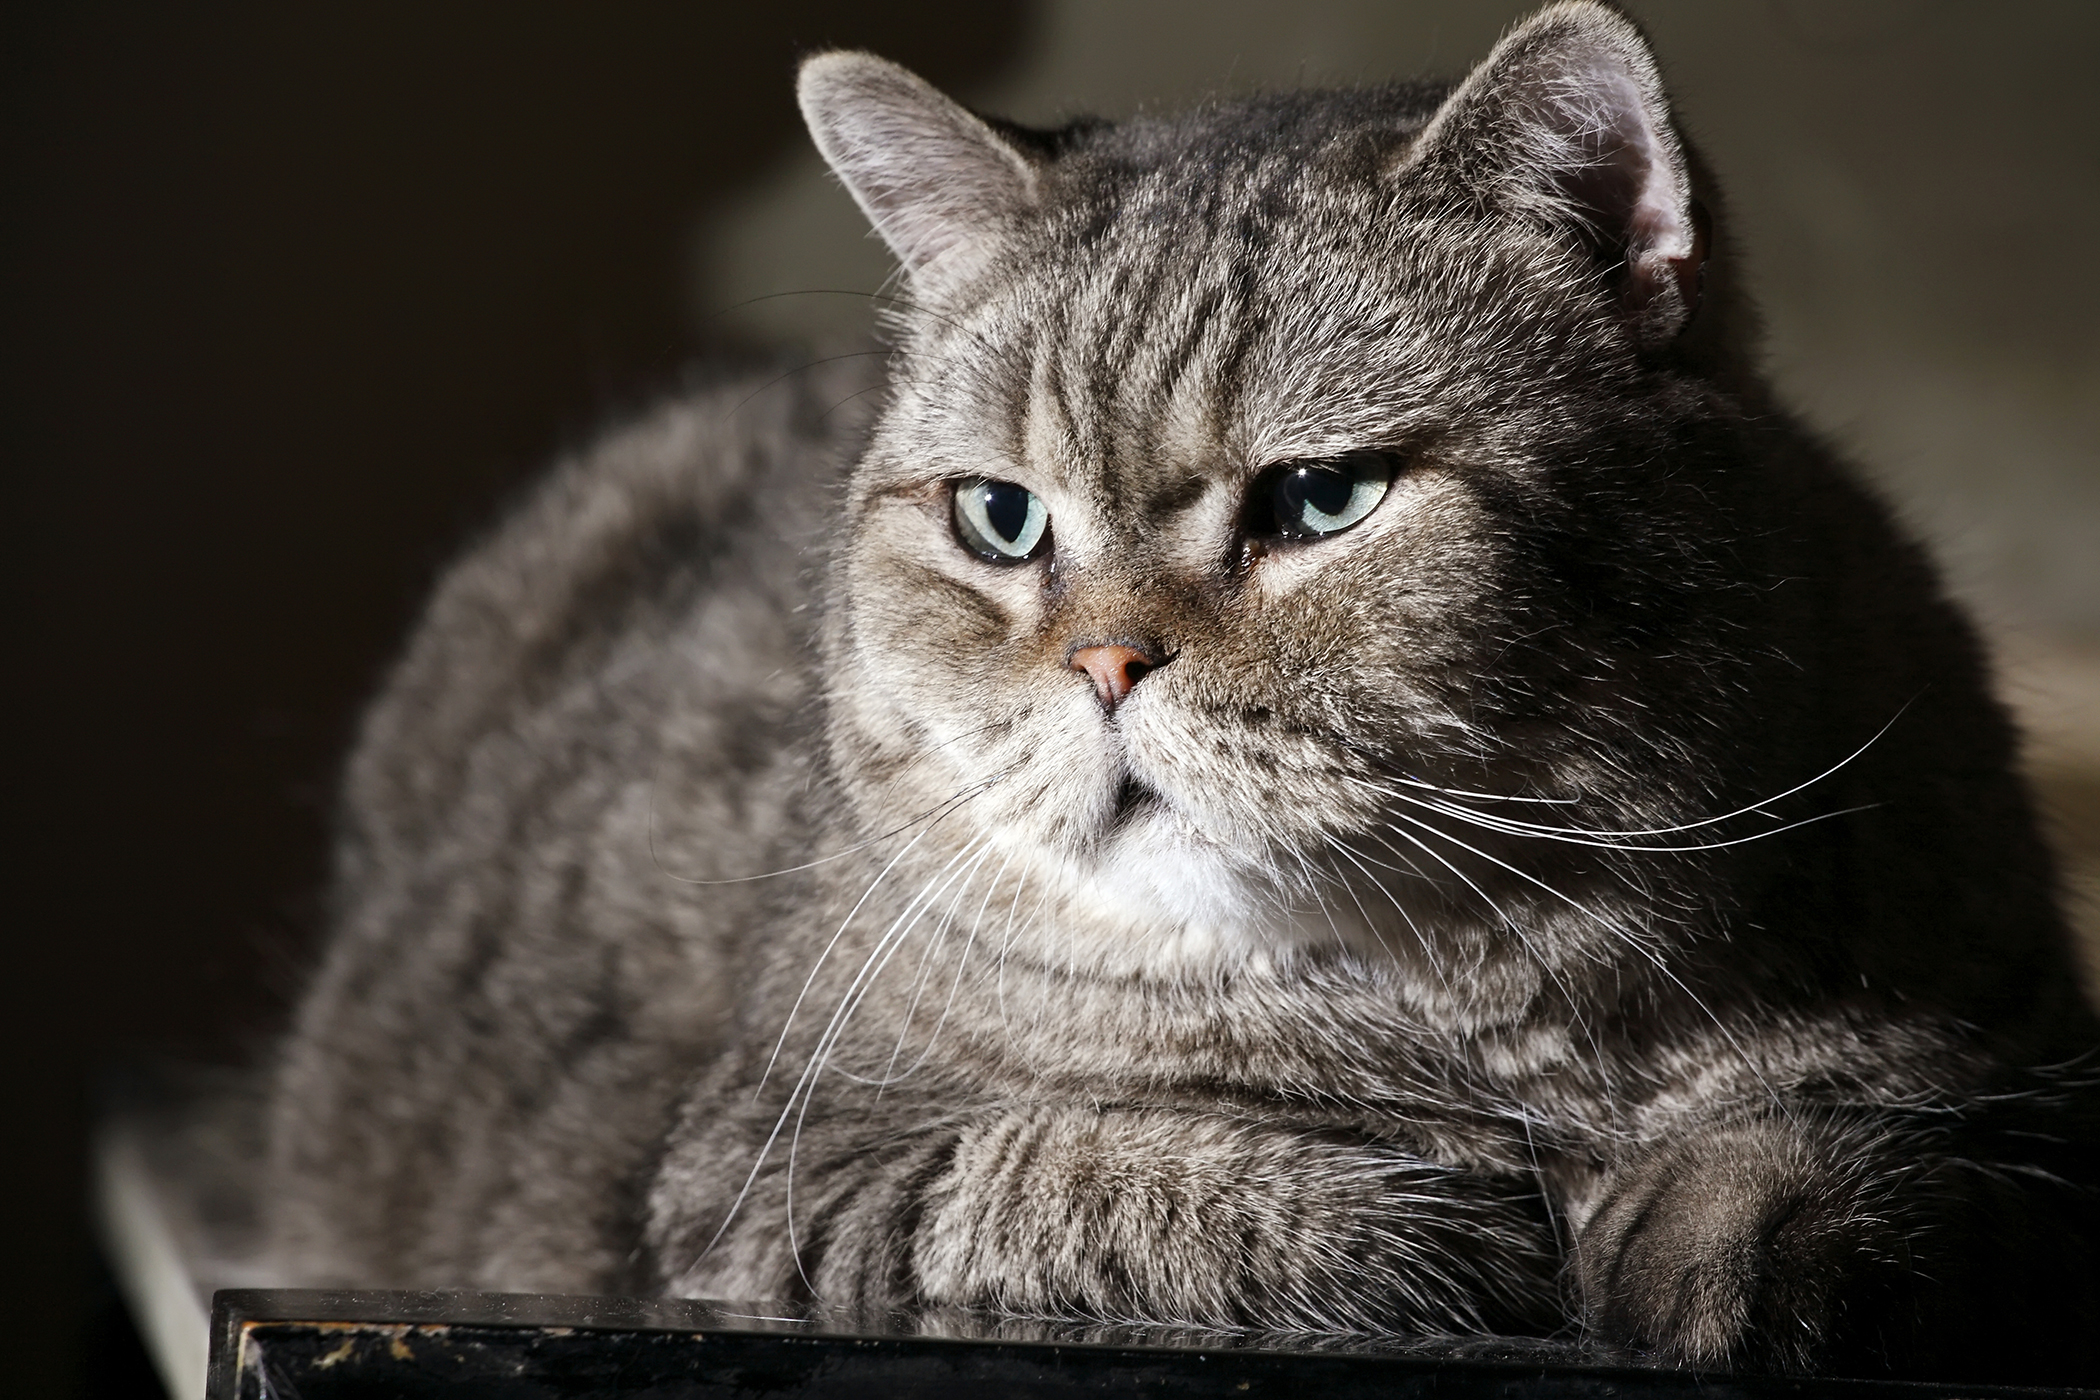 Termite Treatment Allergy in Cats